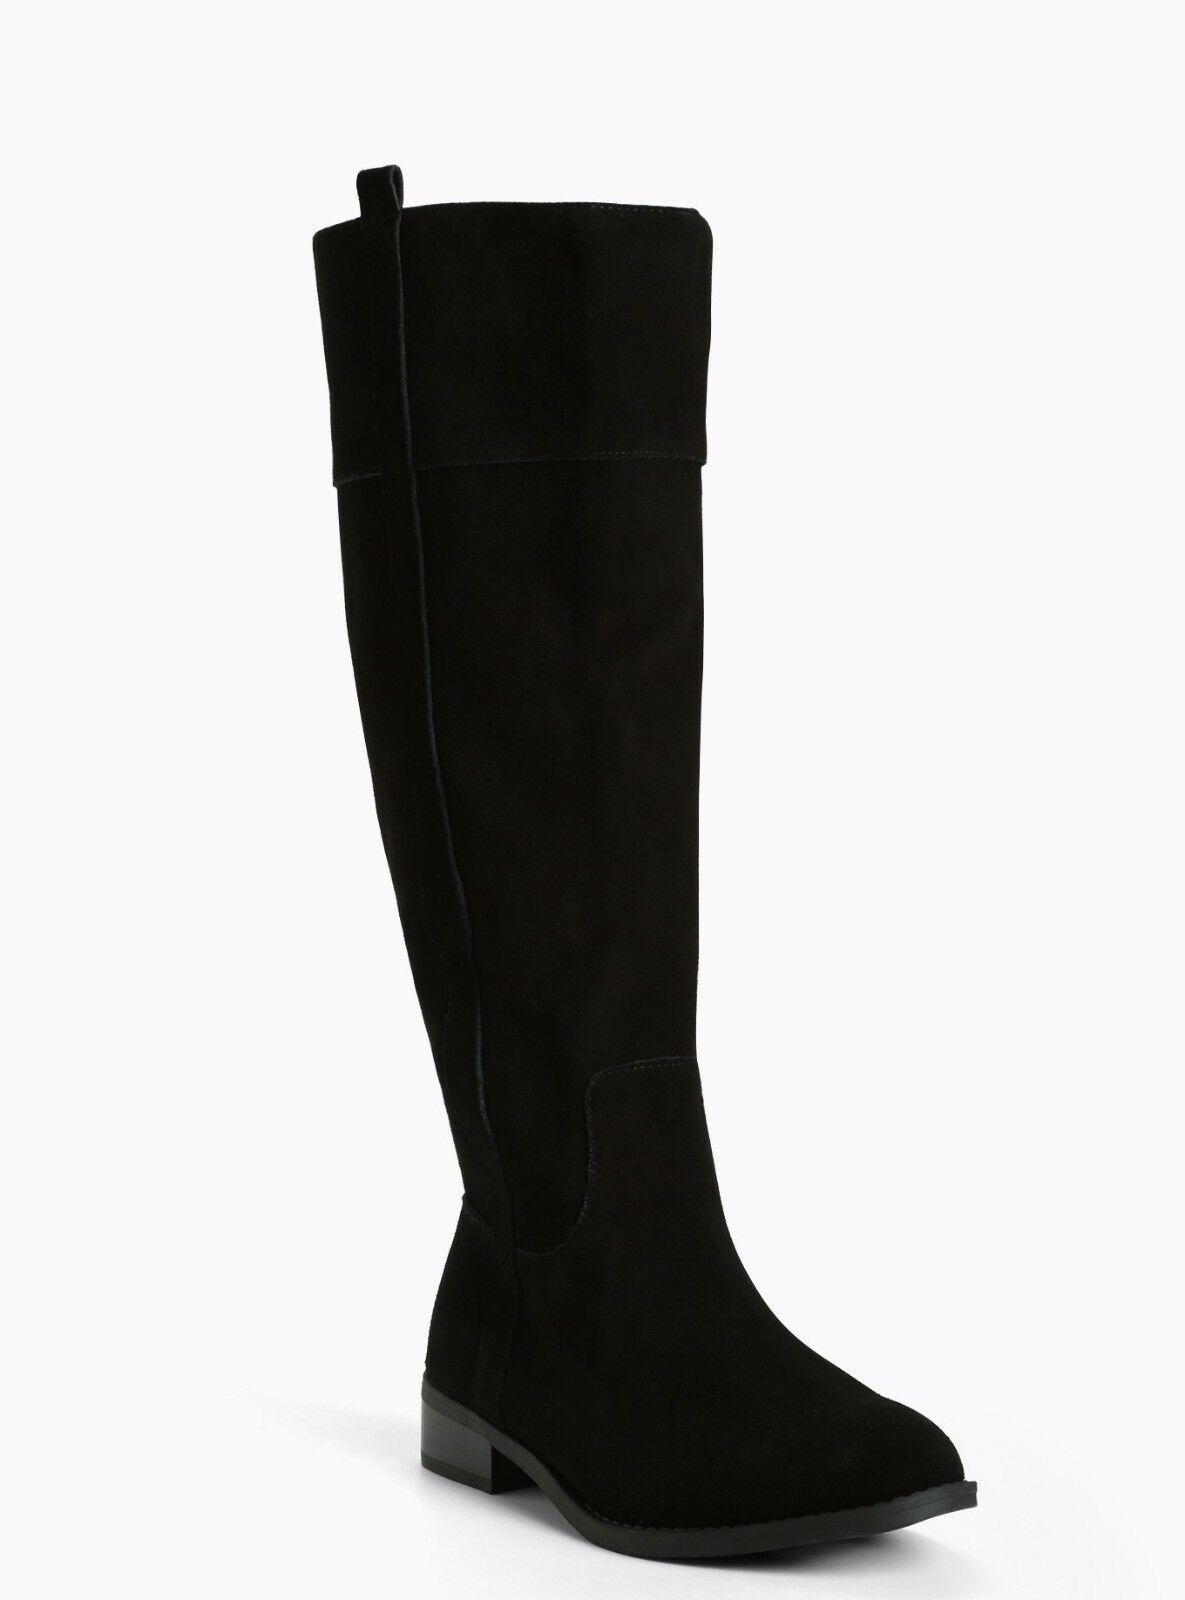 Torrid Genuine Suede Knee High Boots Wide Width & Wide Calf Black 9  0188